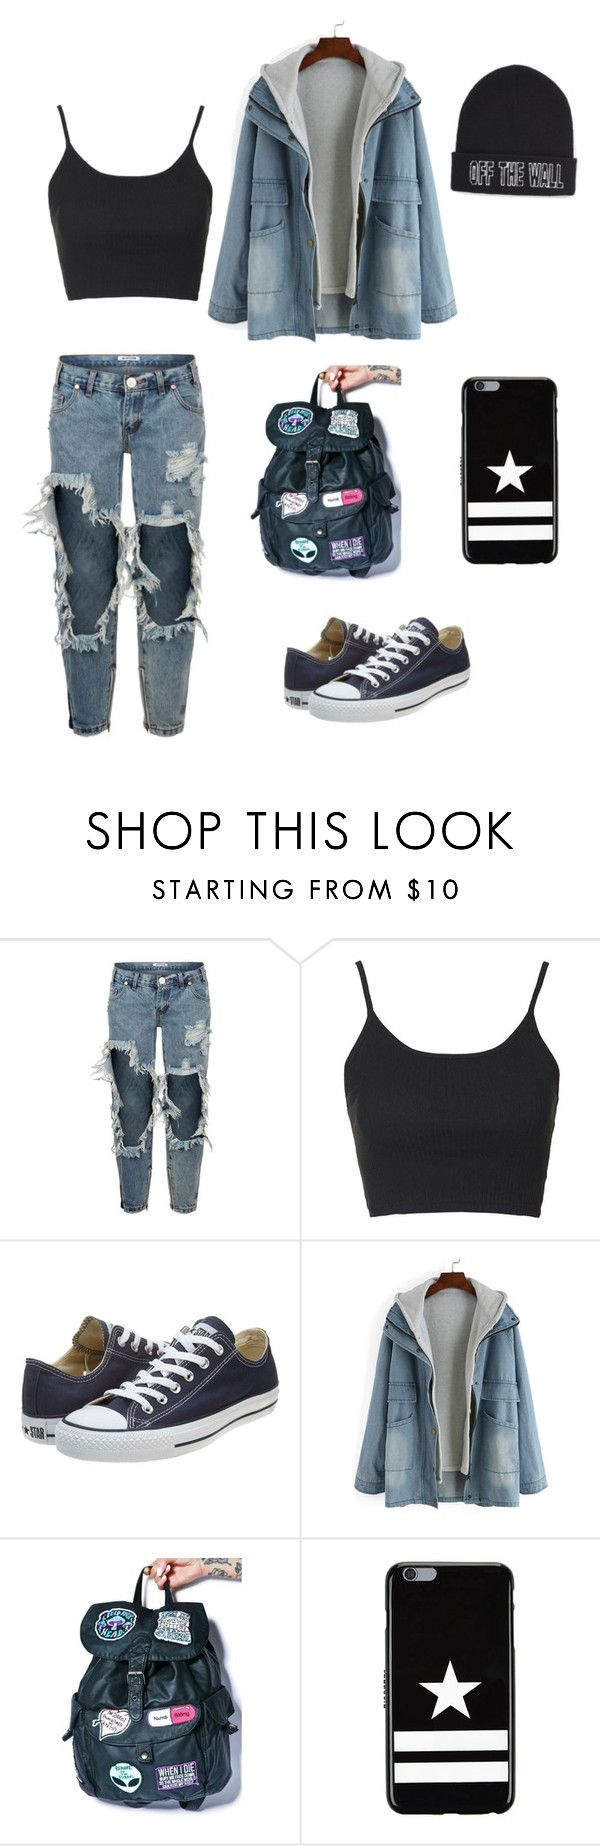 """""""Street style vol.2❤️"""" by nikolstone ❤ liked on Polyvore featuring One Teaspoon, Topshop, Converse, Disturbia, Givenchy, Vans, women's clothing, women, female and woman"""